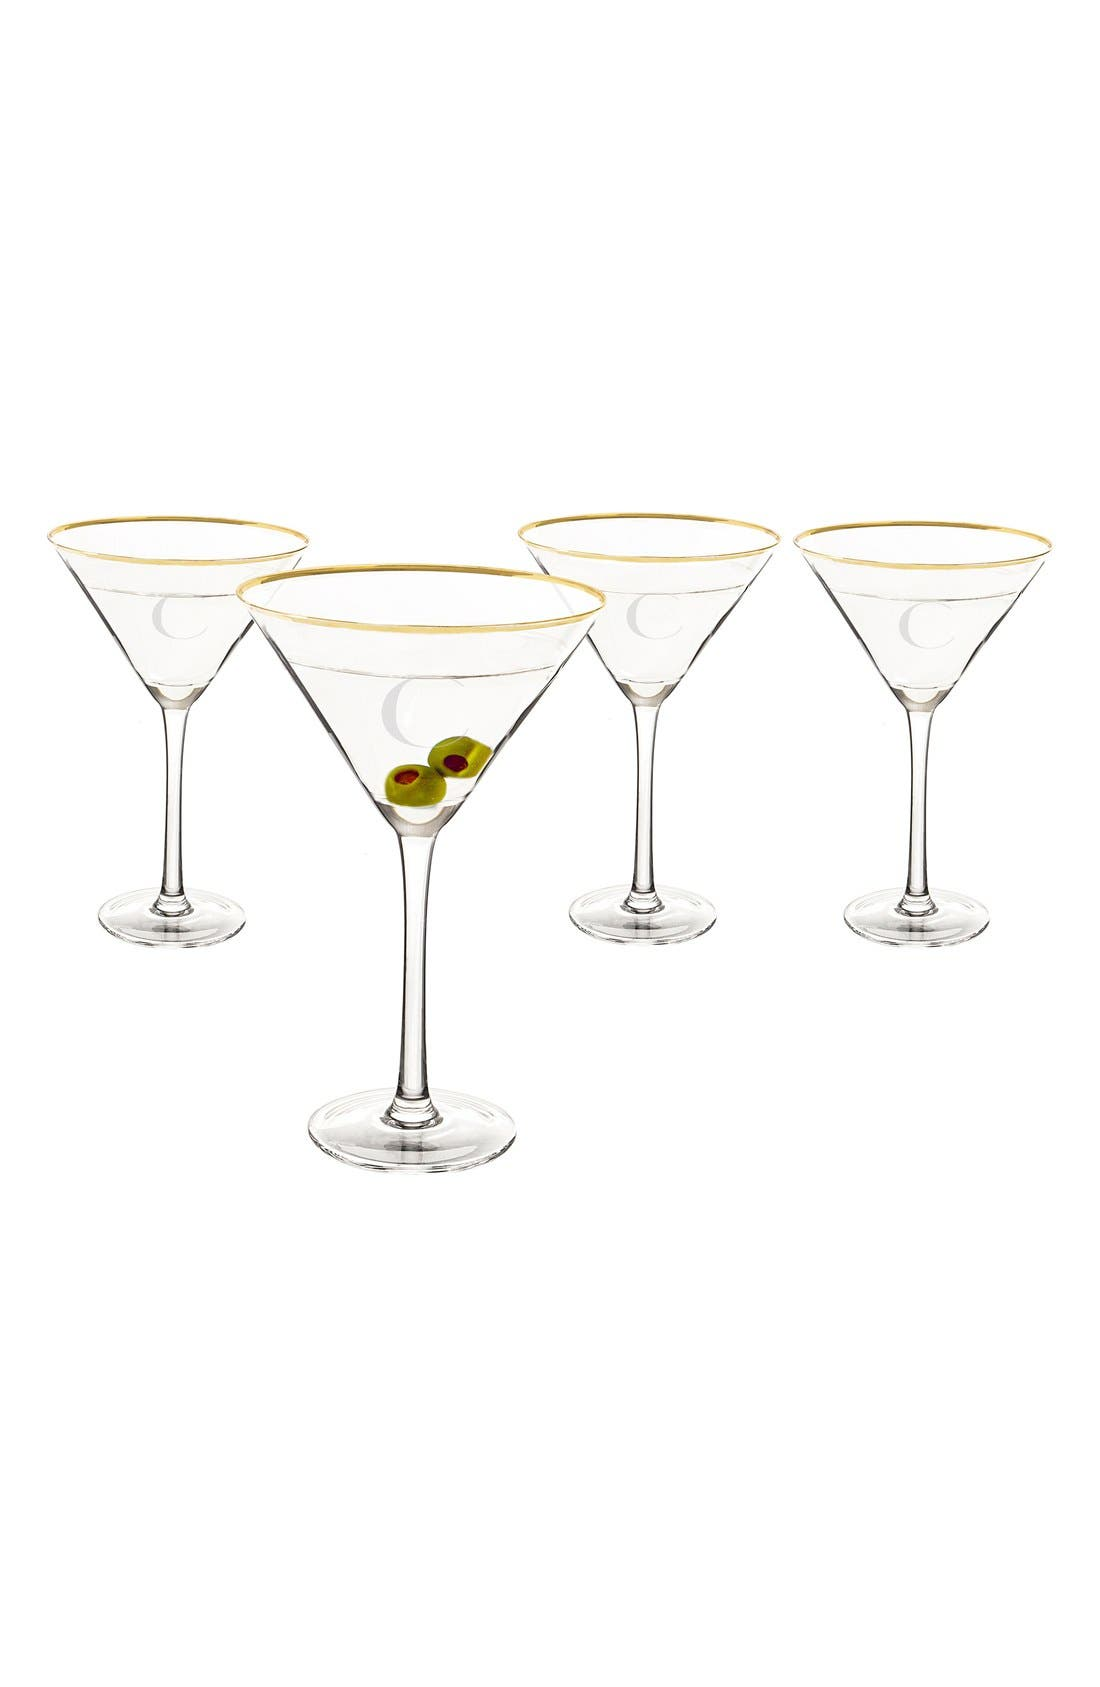 CATHY'S CONCEPTS Set of 4 Gold Rimmed Monogram